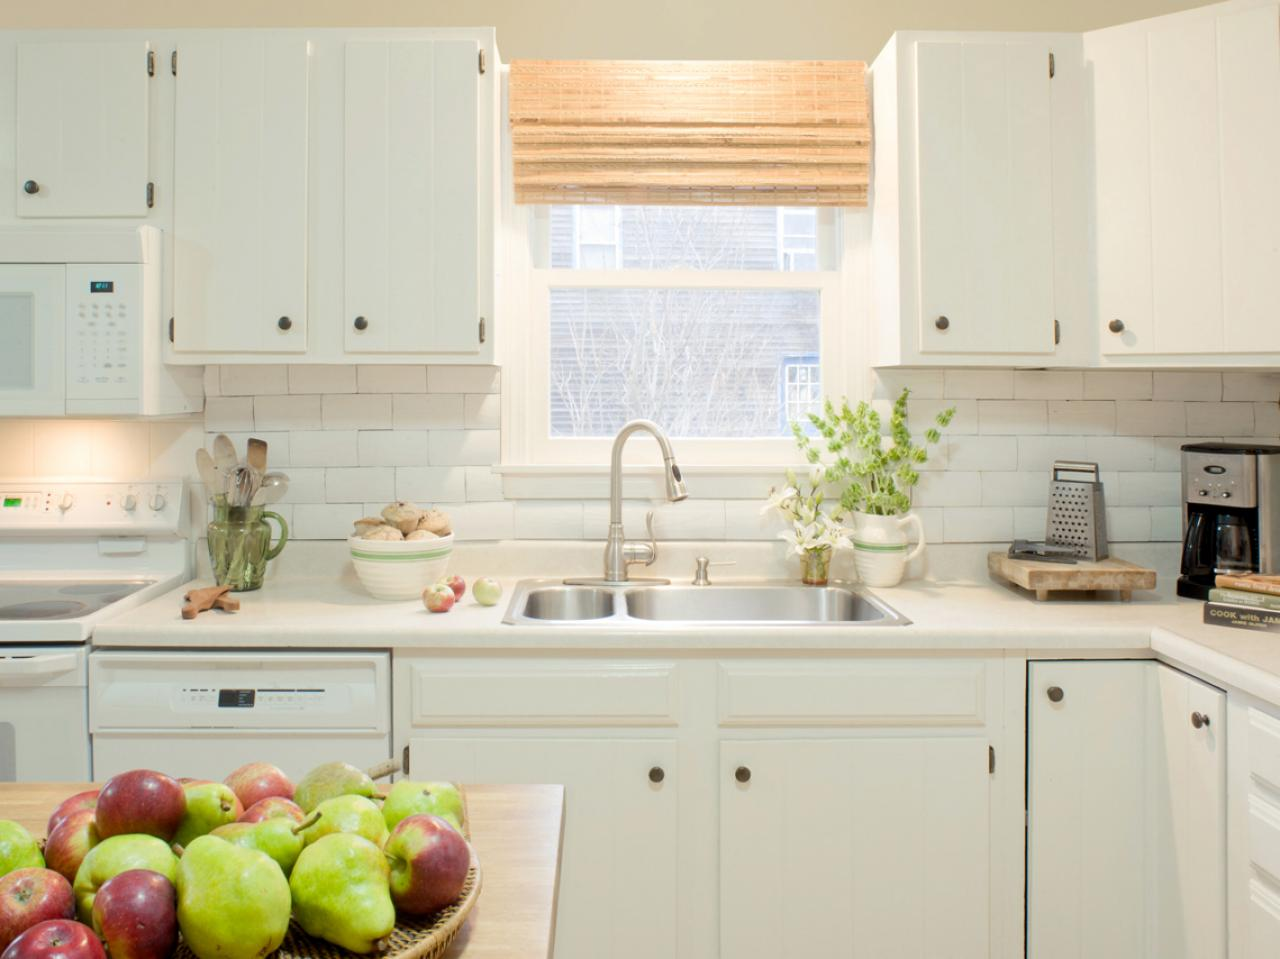 7 Budget Backsplash Projects